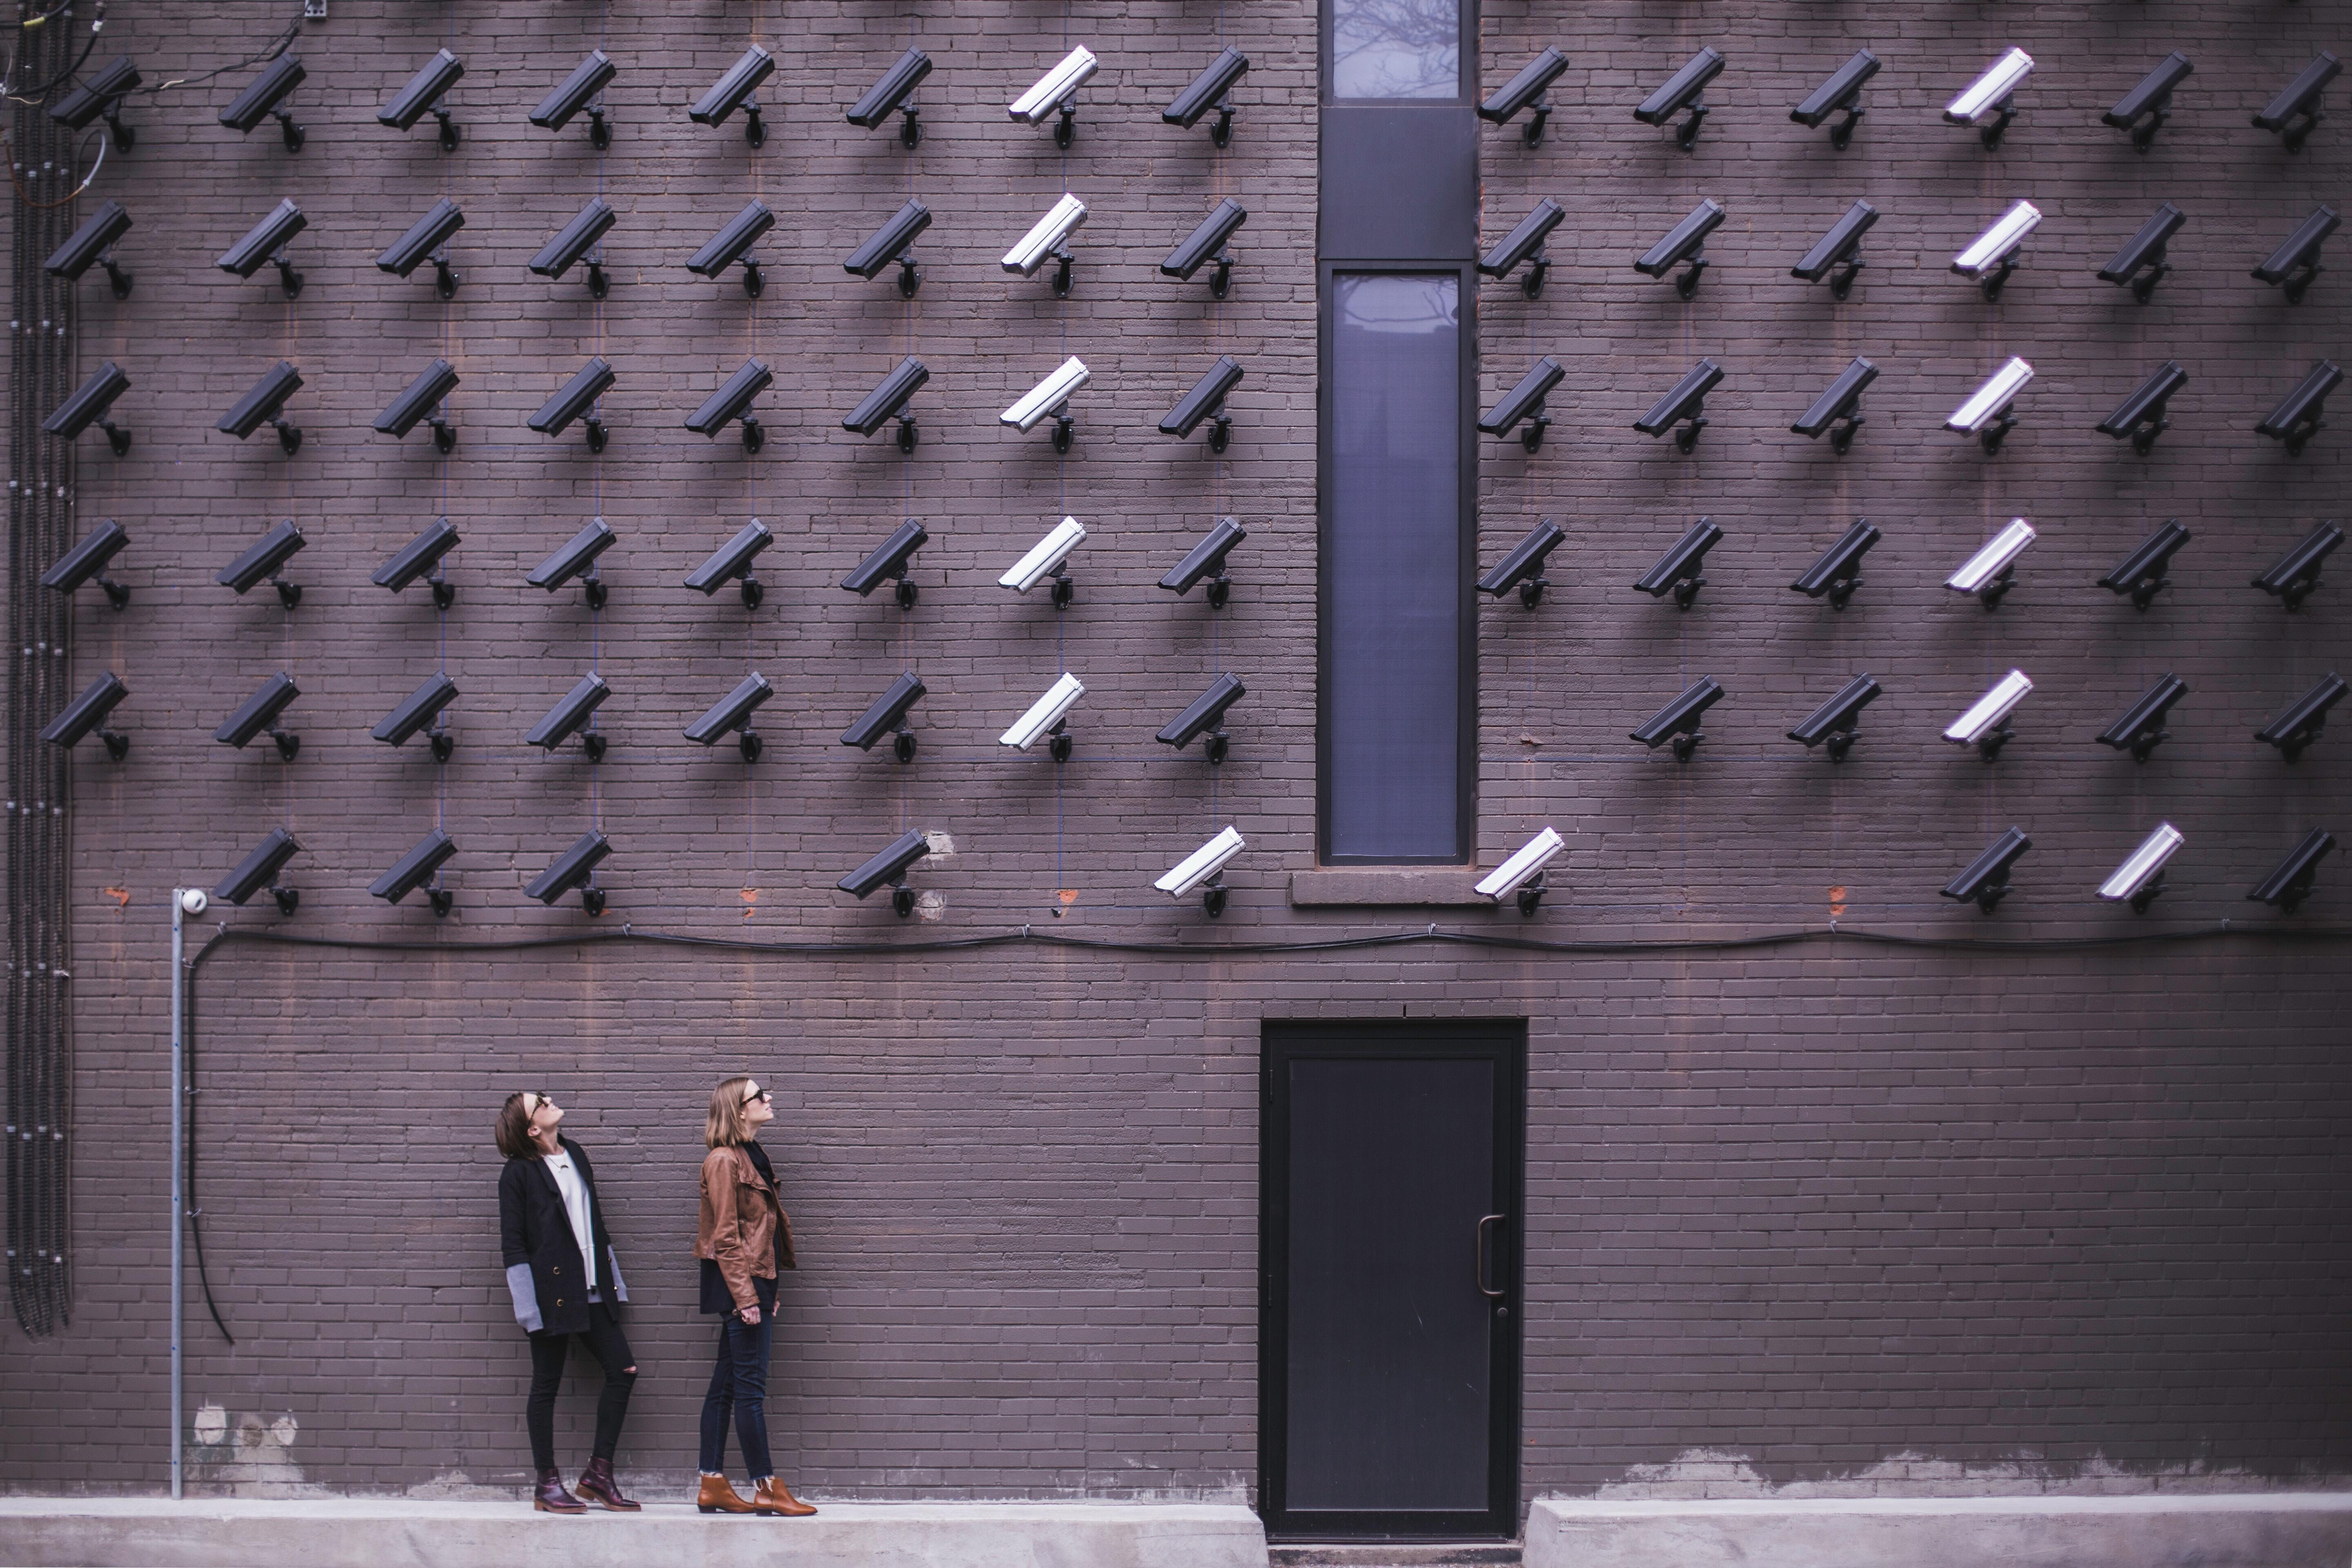 Guest Post: When This is Behind Us, How Will We Think About Privacy